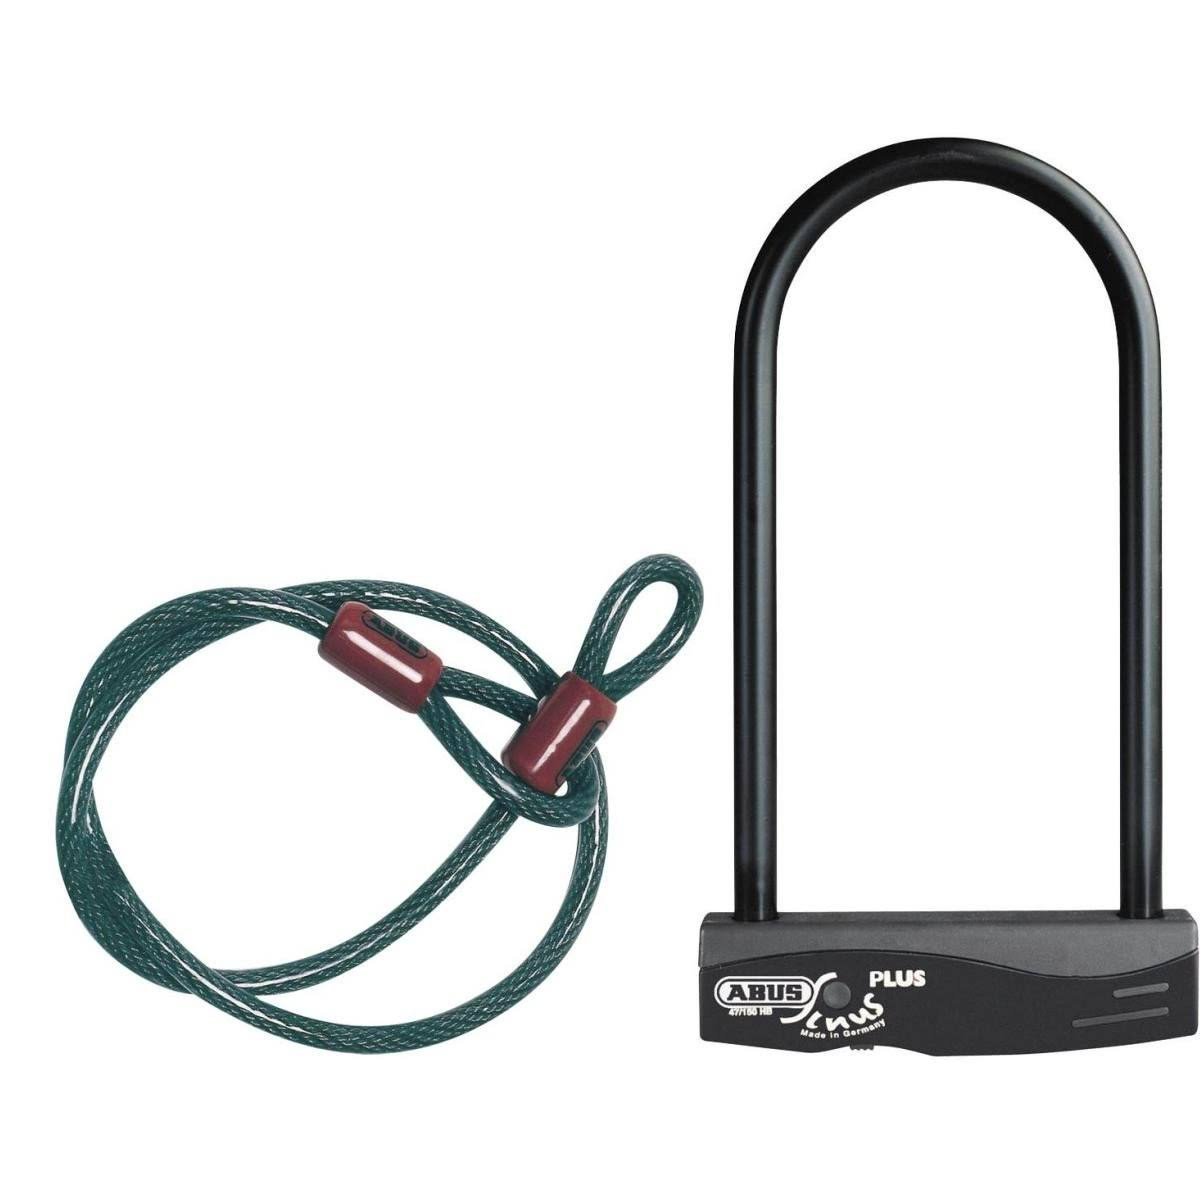 Abus Sinus Plus U-lock & Cable